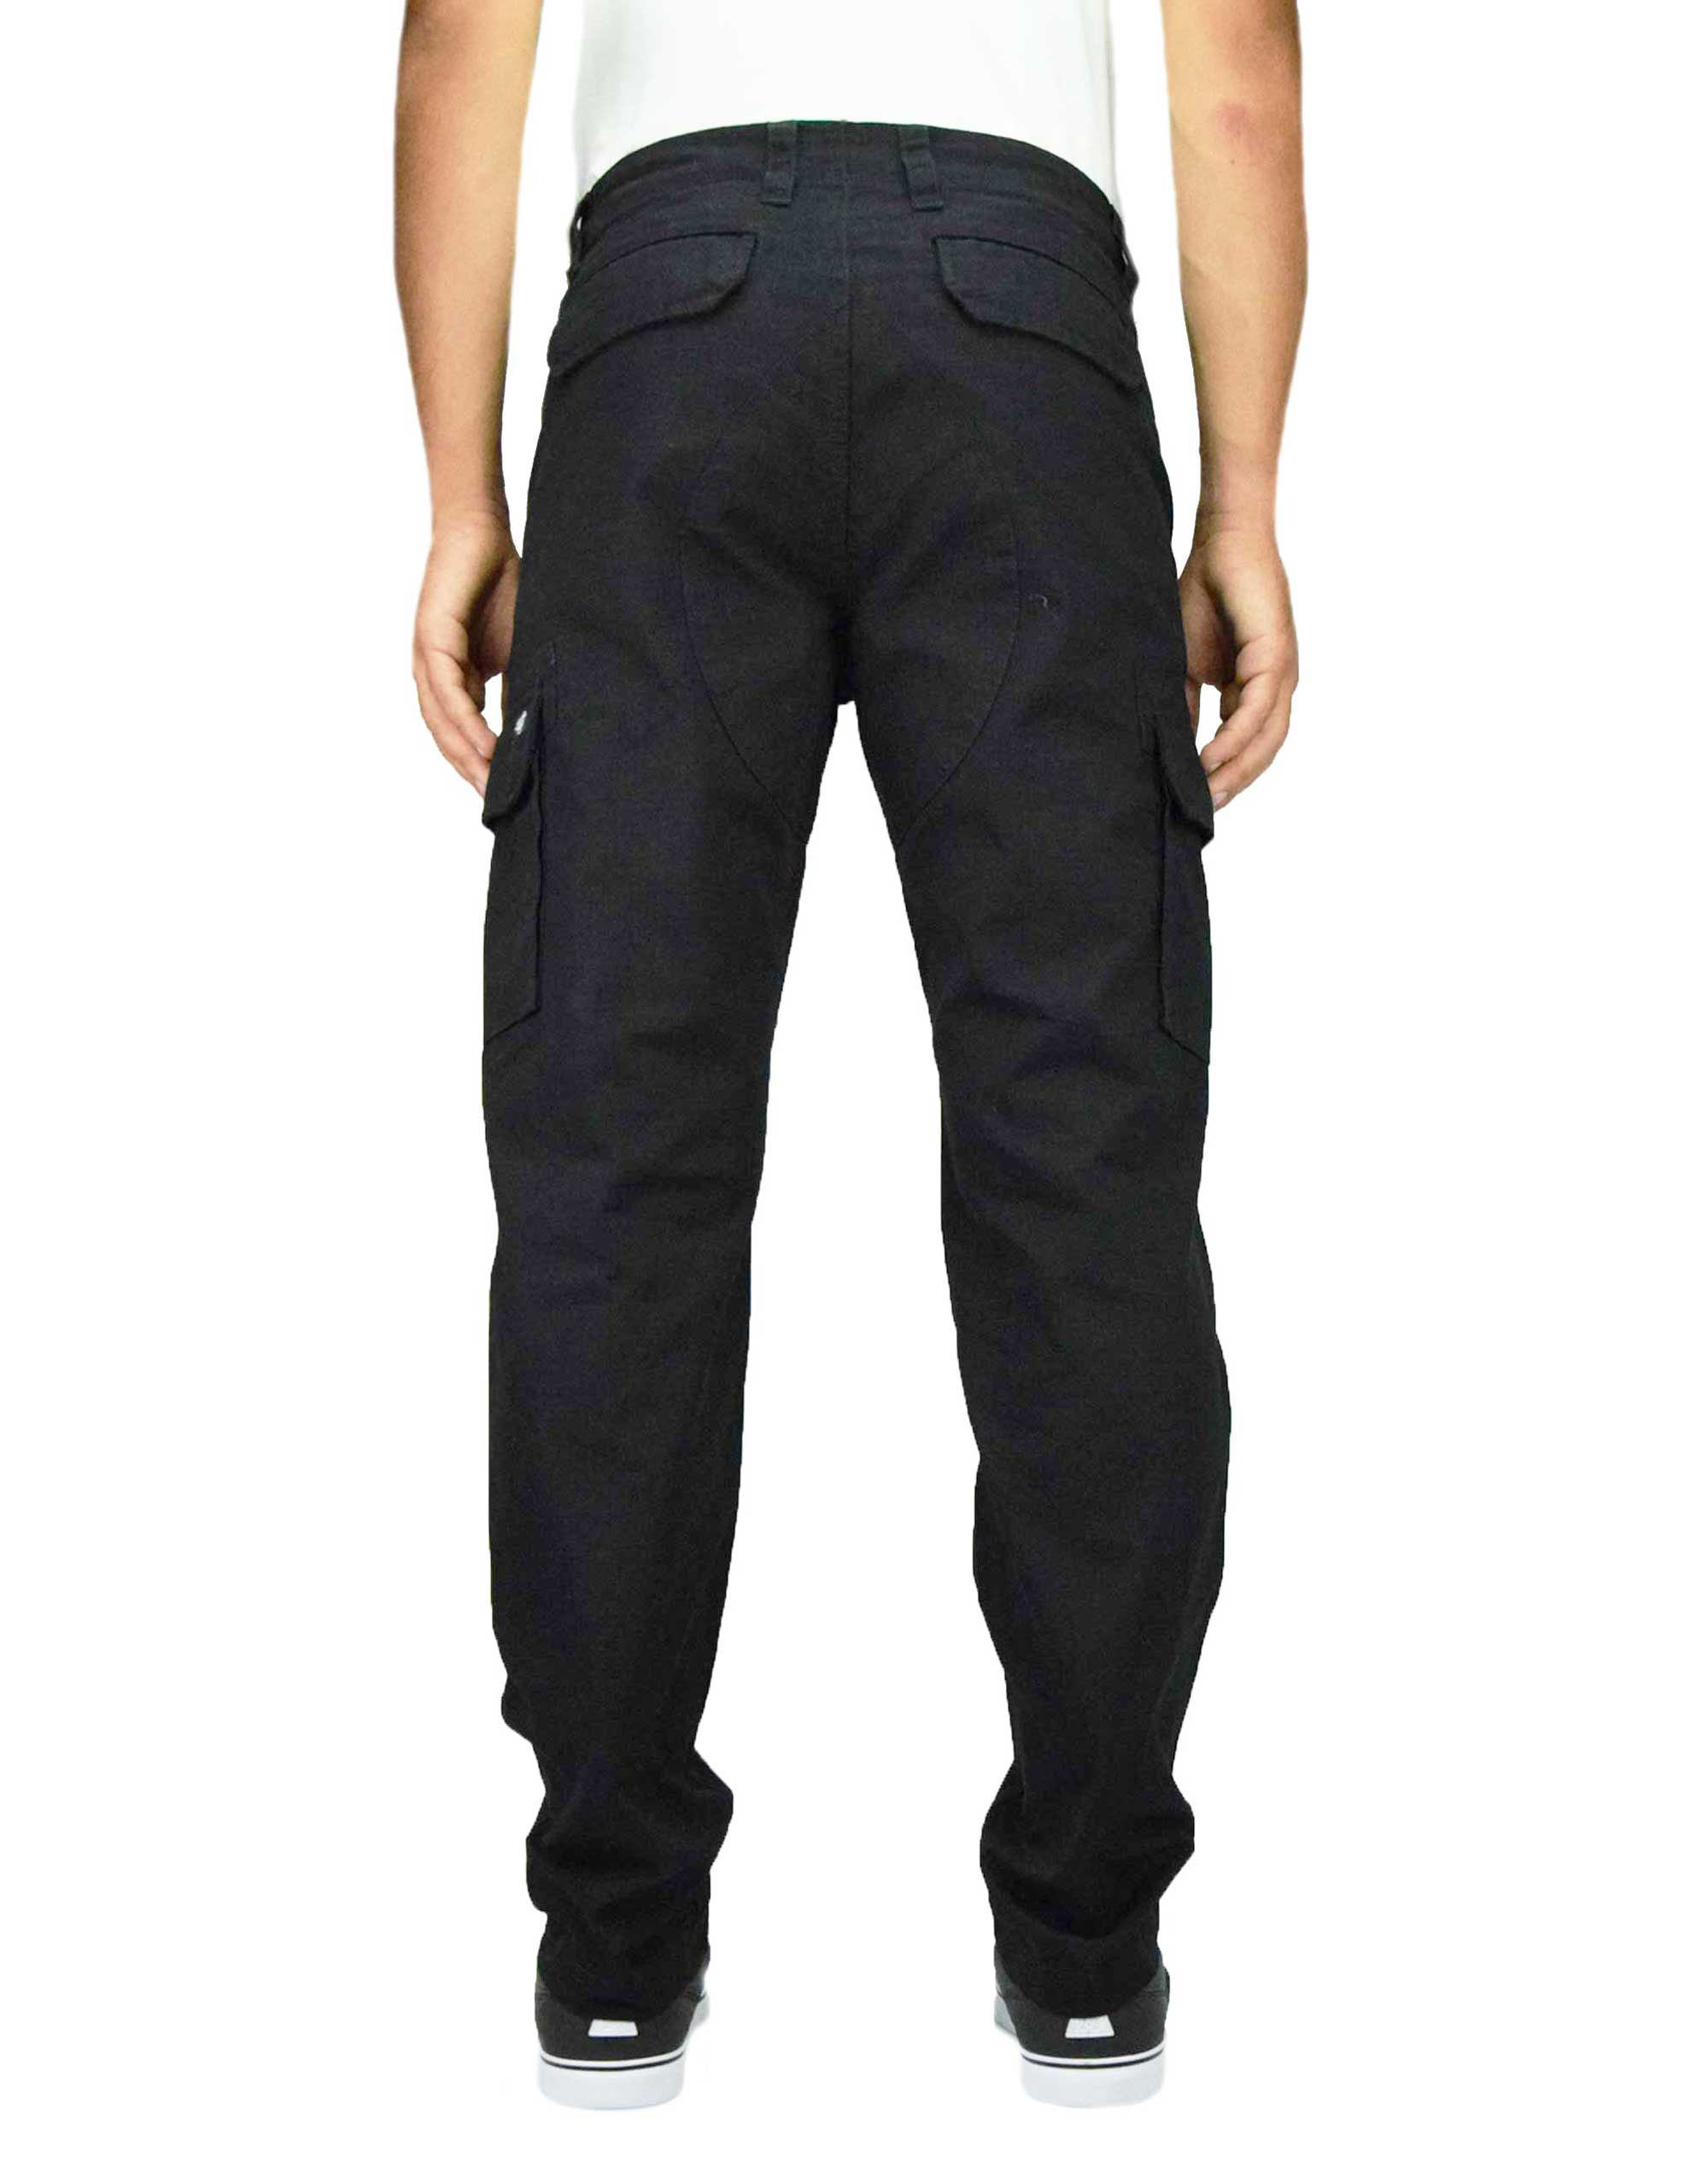 Dickies Edwardsport Slim Fit Combat Pant (DK121121BLK1) Black